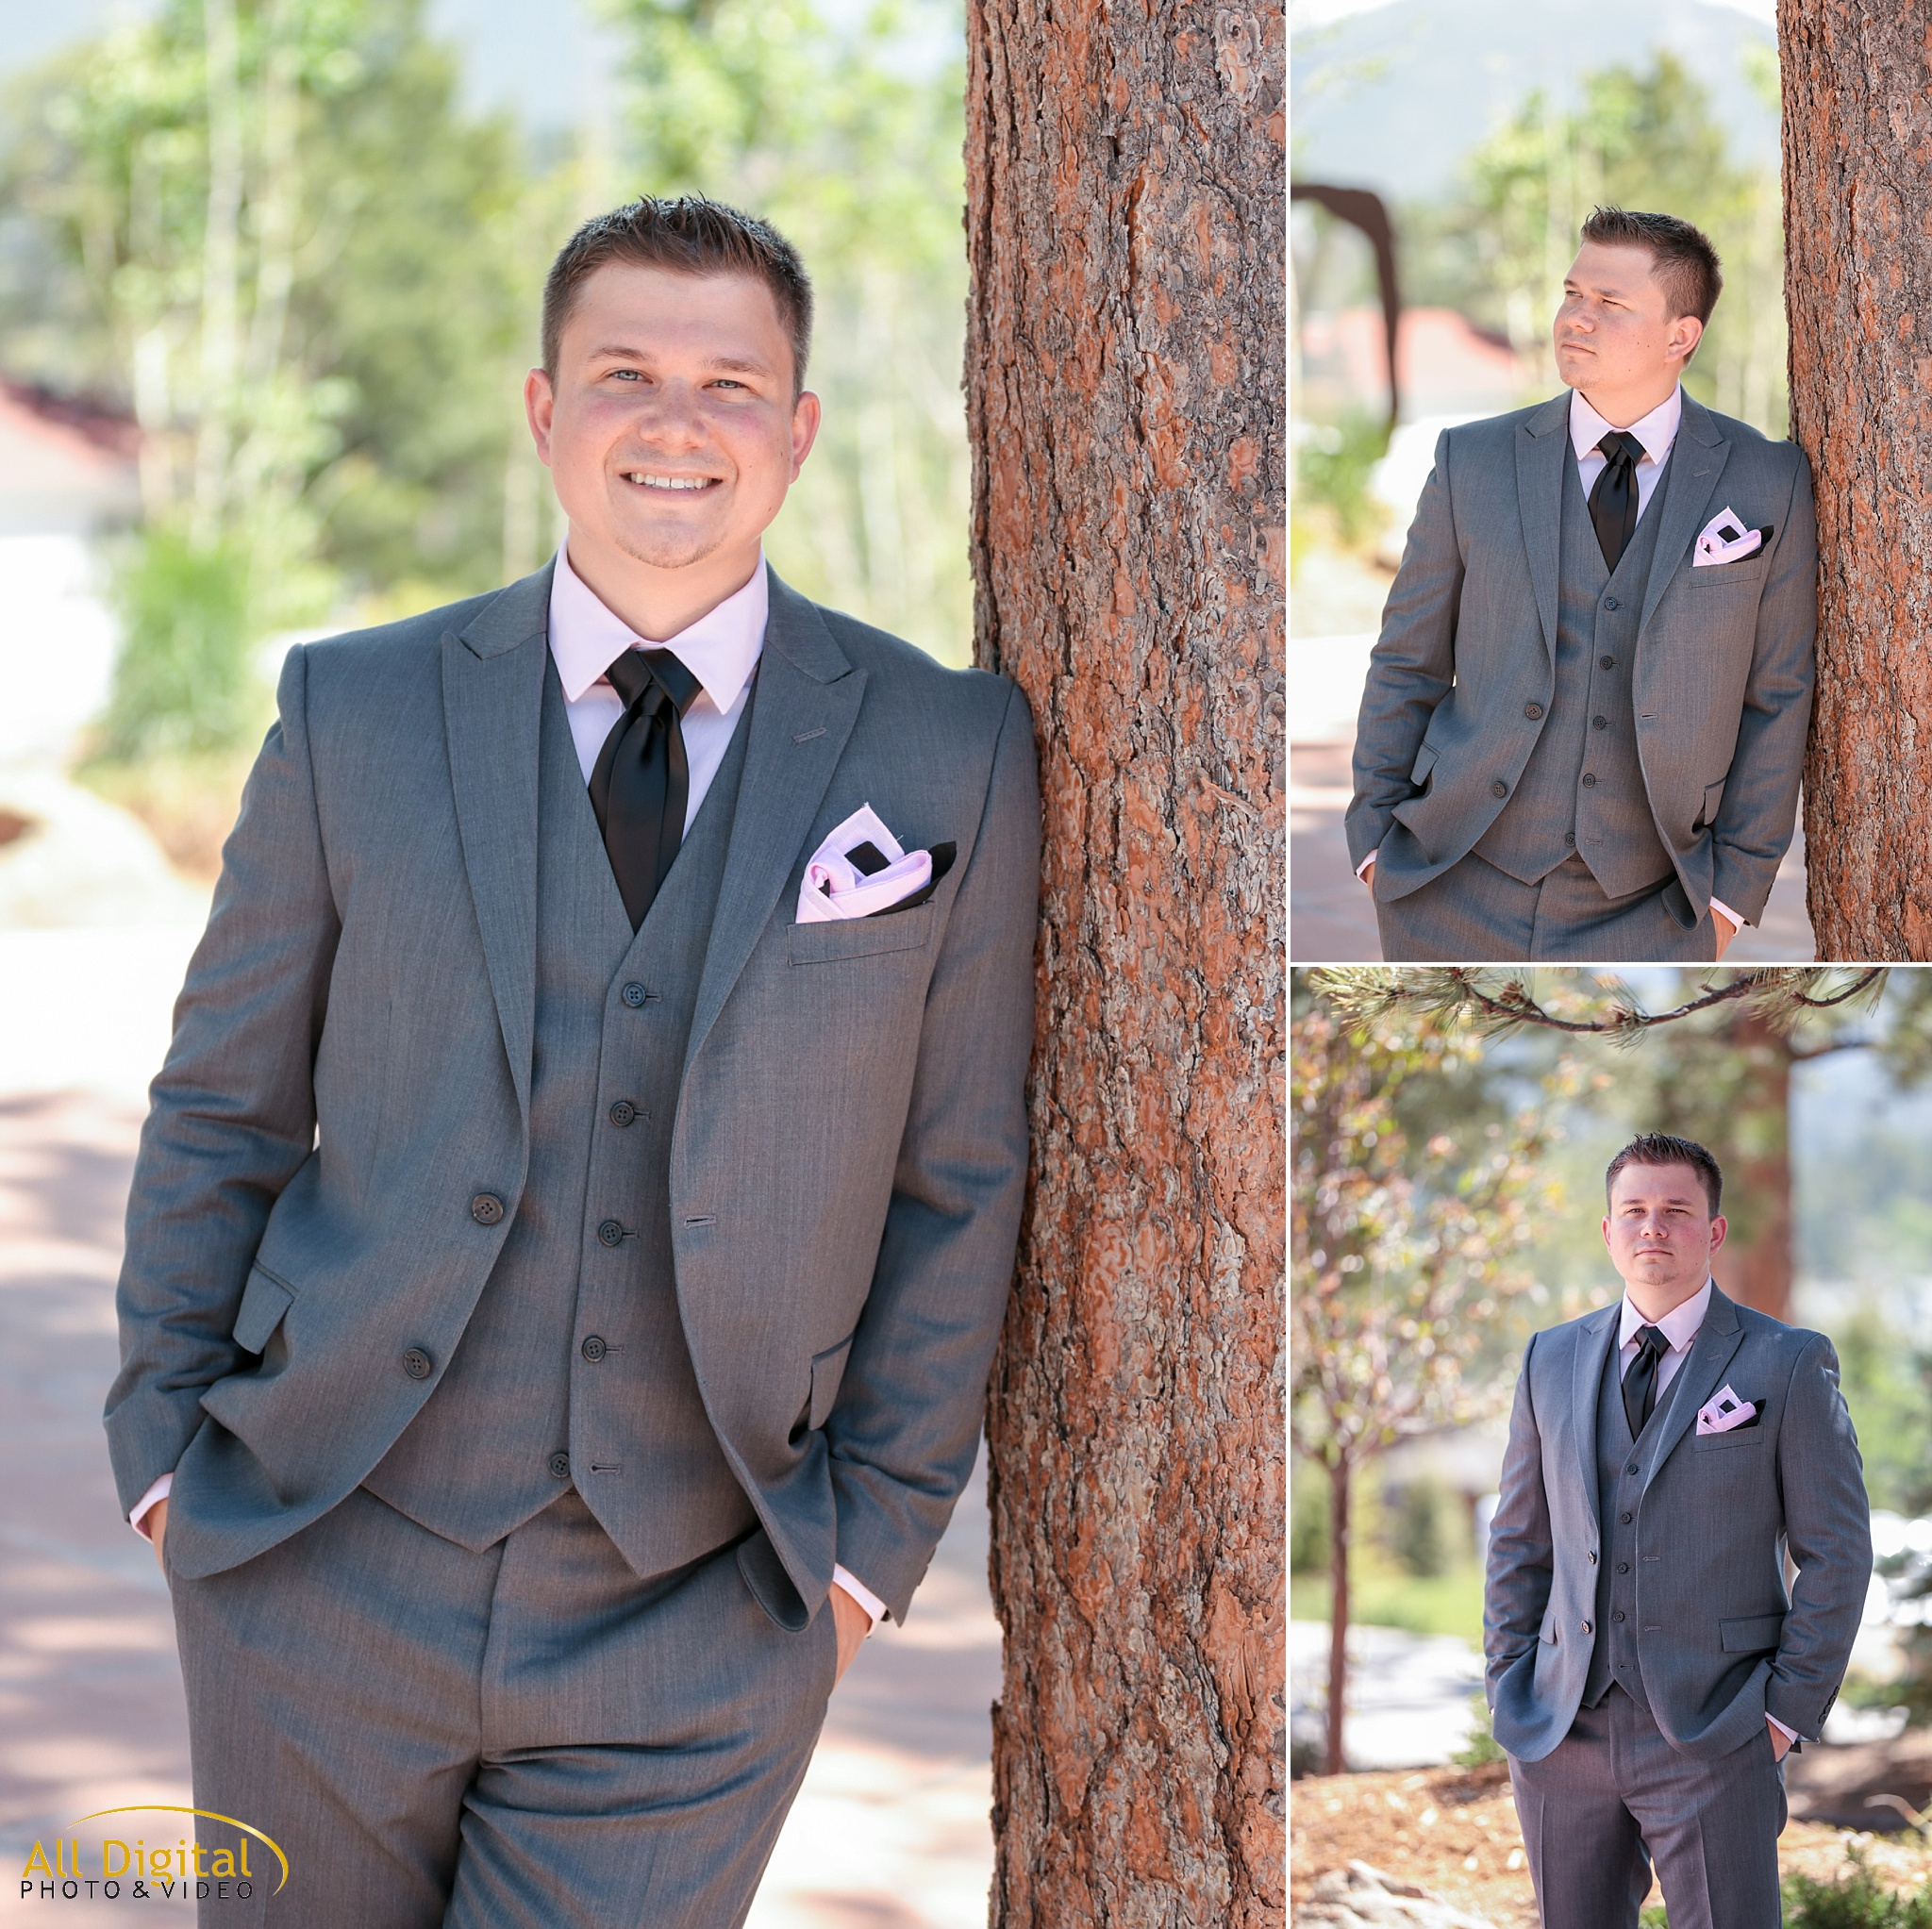 Groom portraits at the Stanley Hotel in Estes Park, Colorado